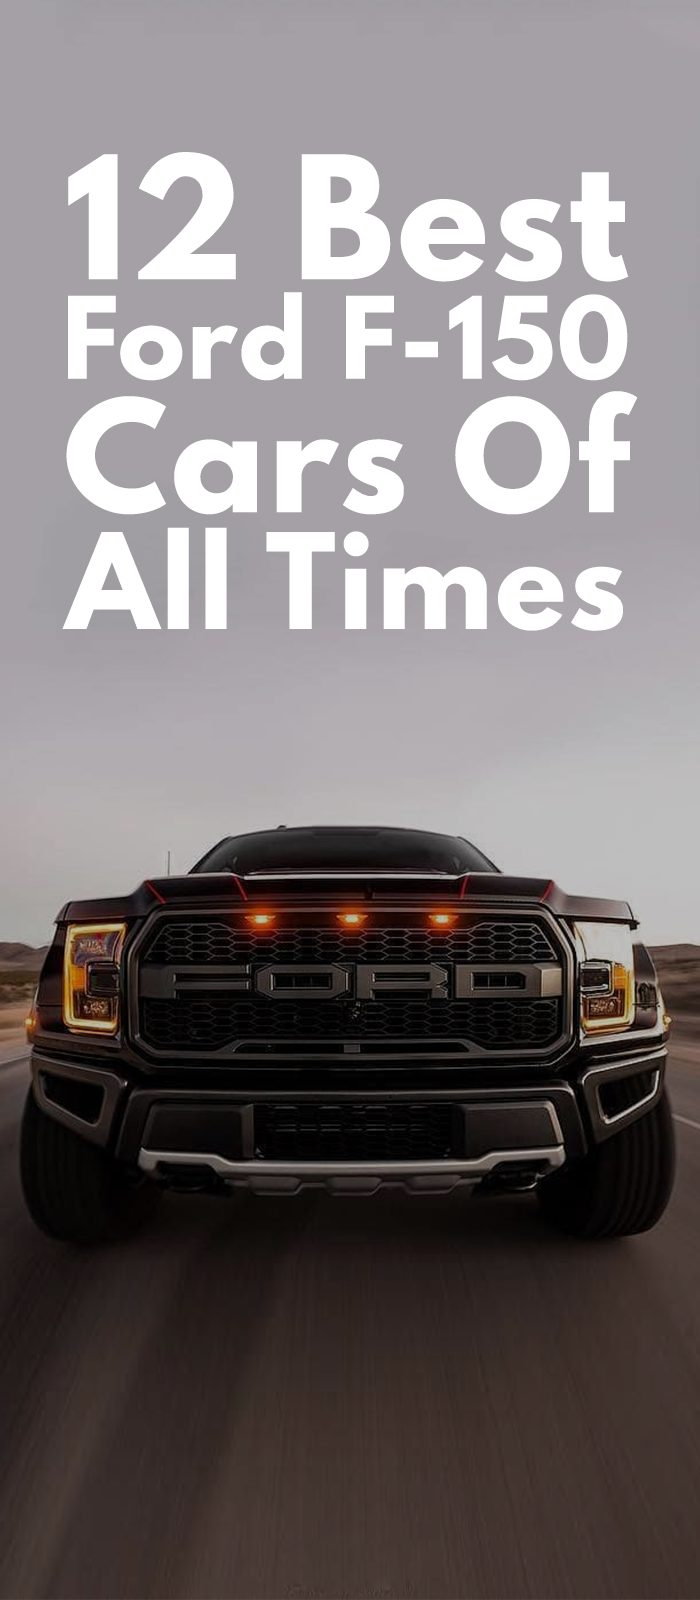 12 Best Ford F-150 Cars Of All Times